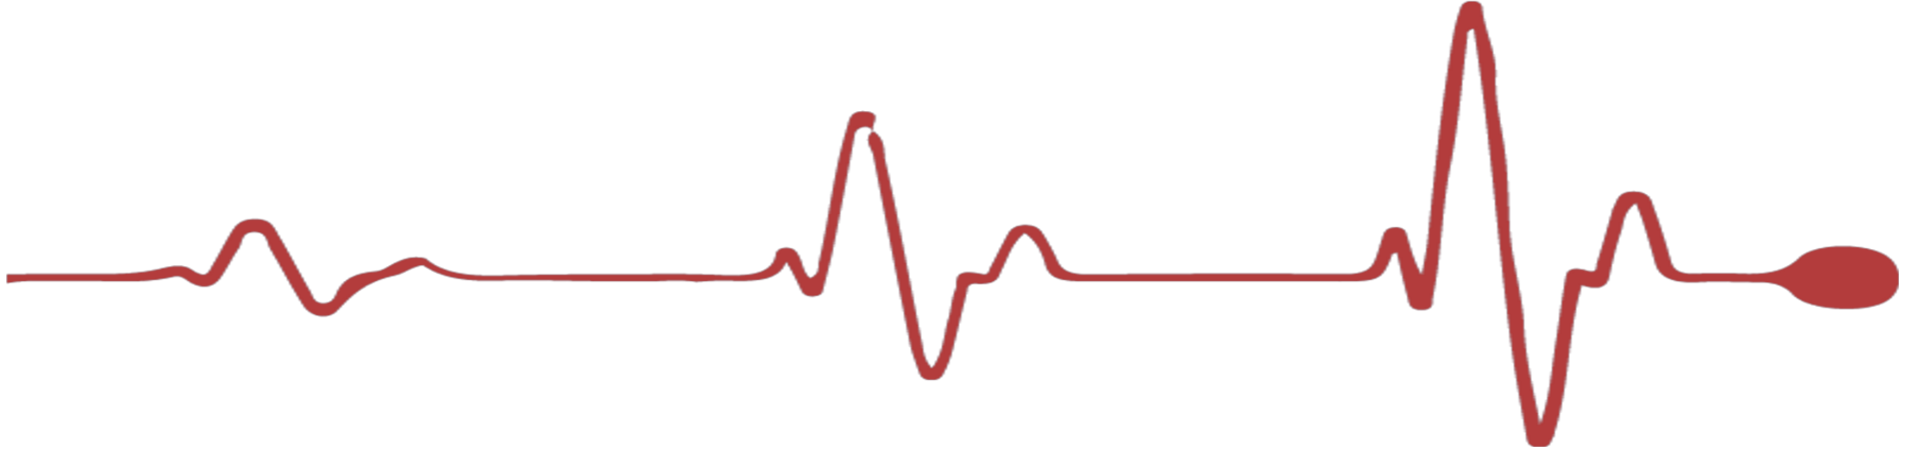 Heartbeat hd transparent images. Heart pulse png graphic royalty free stock